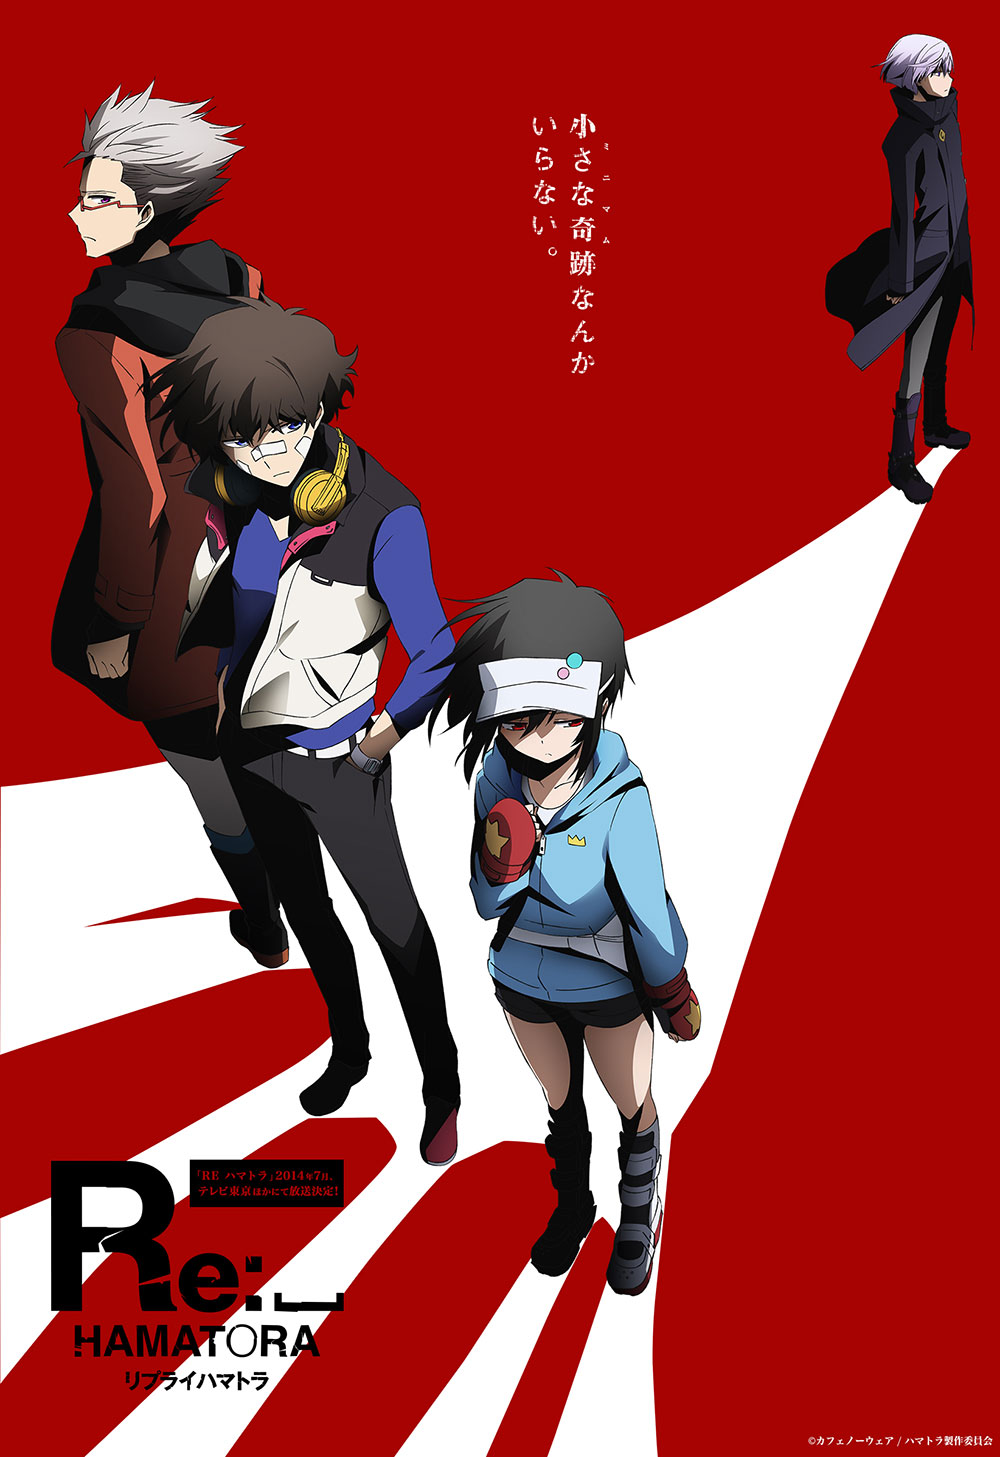 Hamatora The Animation Season 2 Titled Re_Hamatora Visual